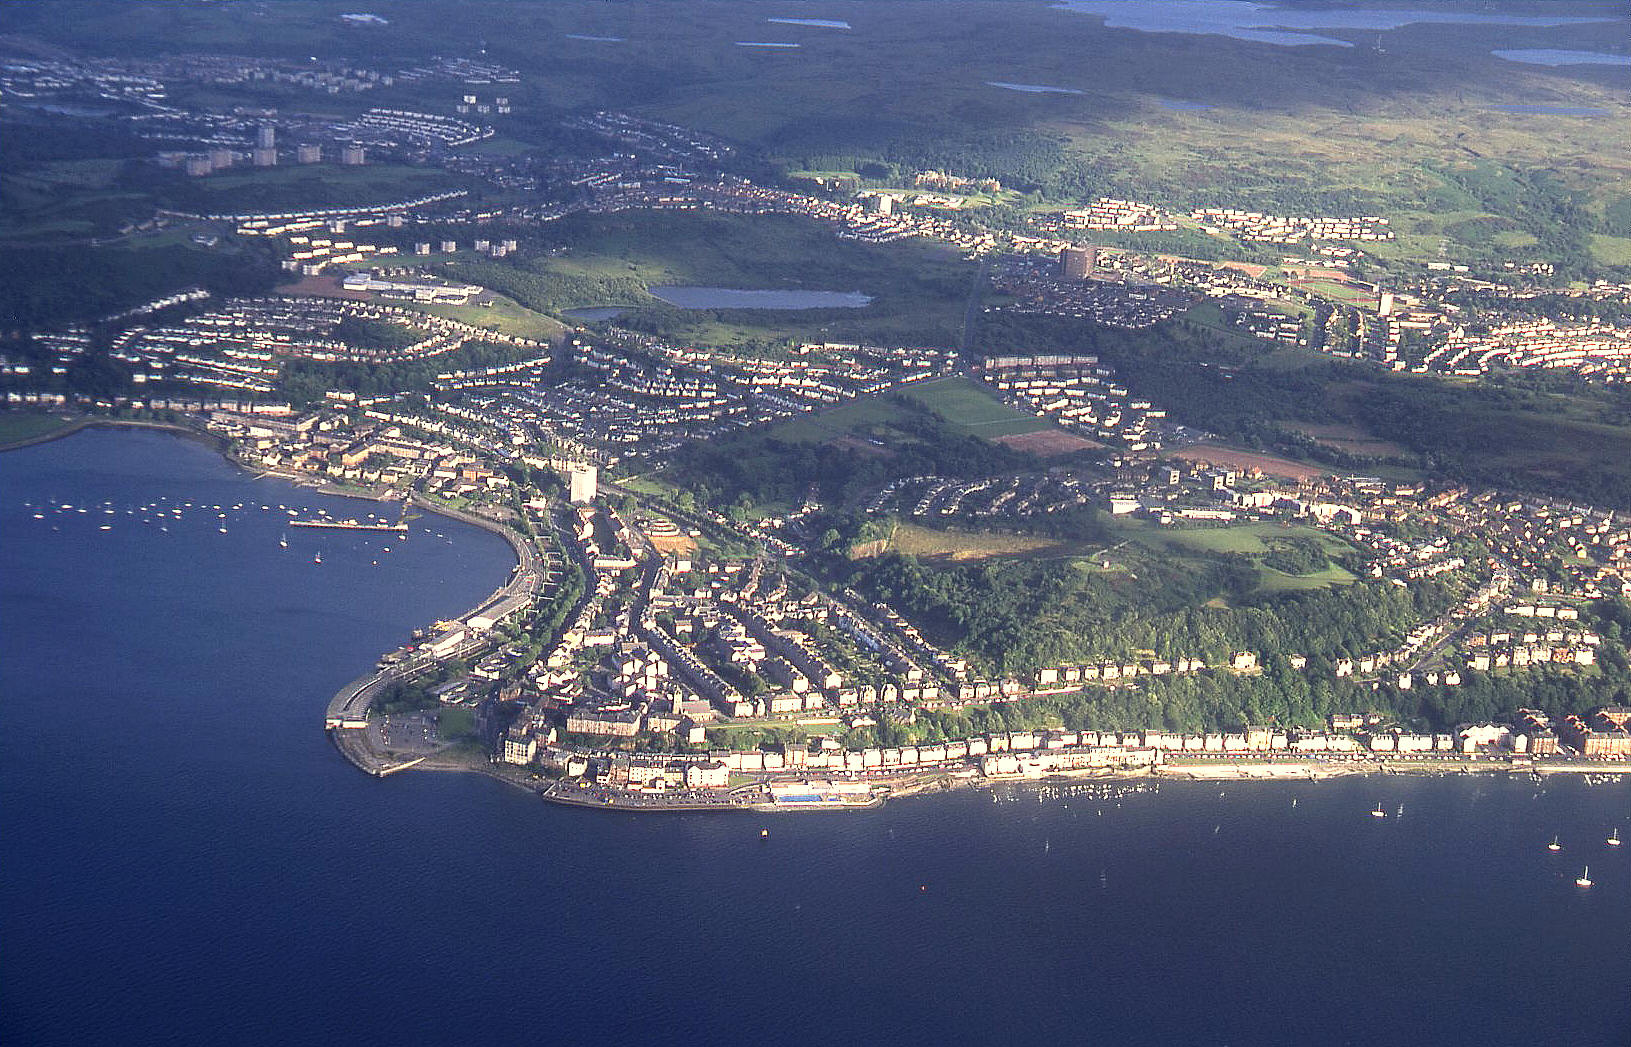 Gourock, at the top of the Firth of Clyde, Scotland - 2003